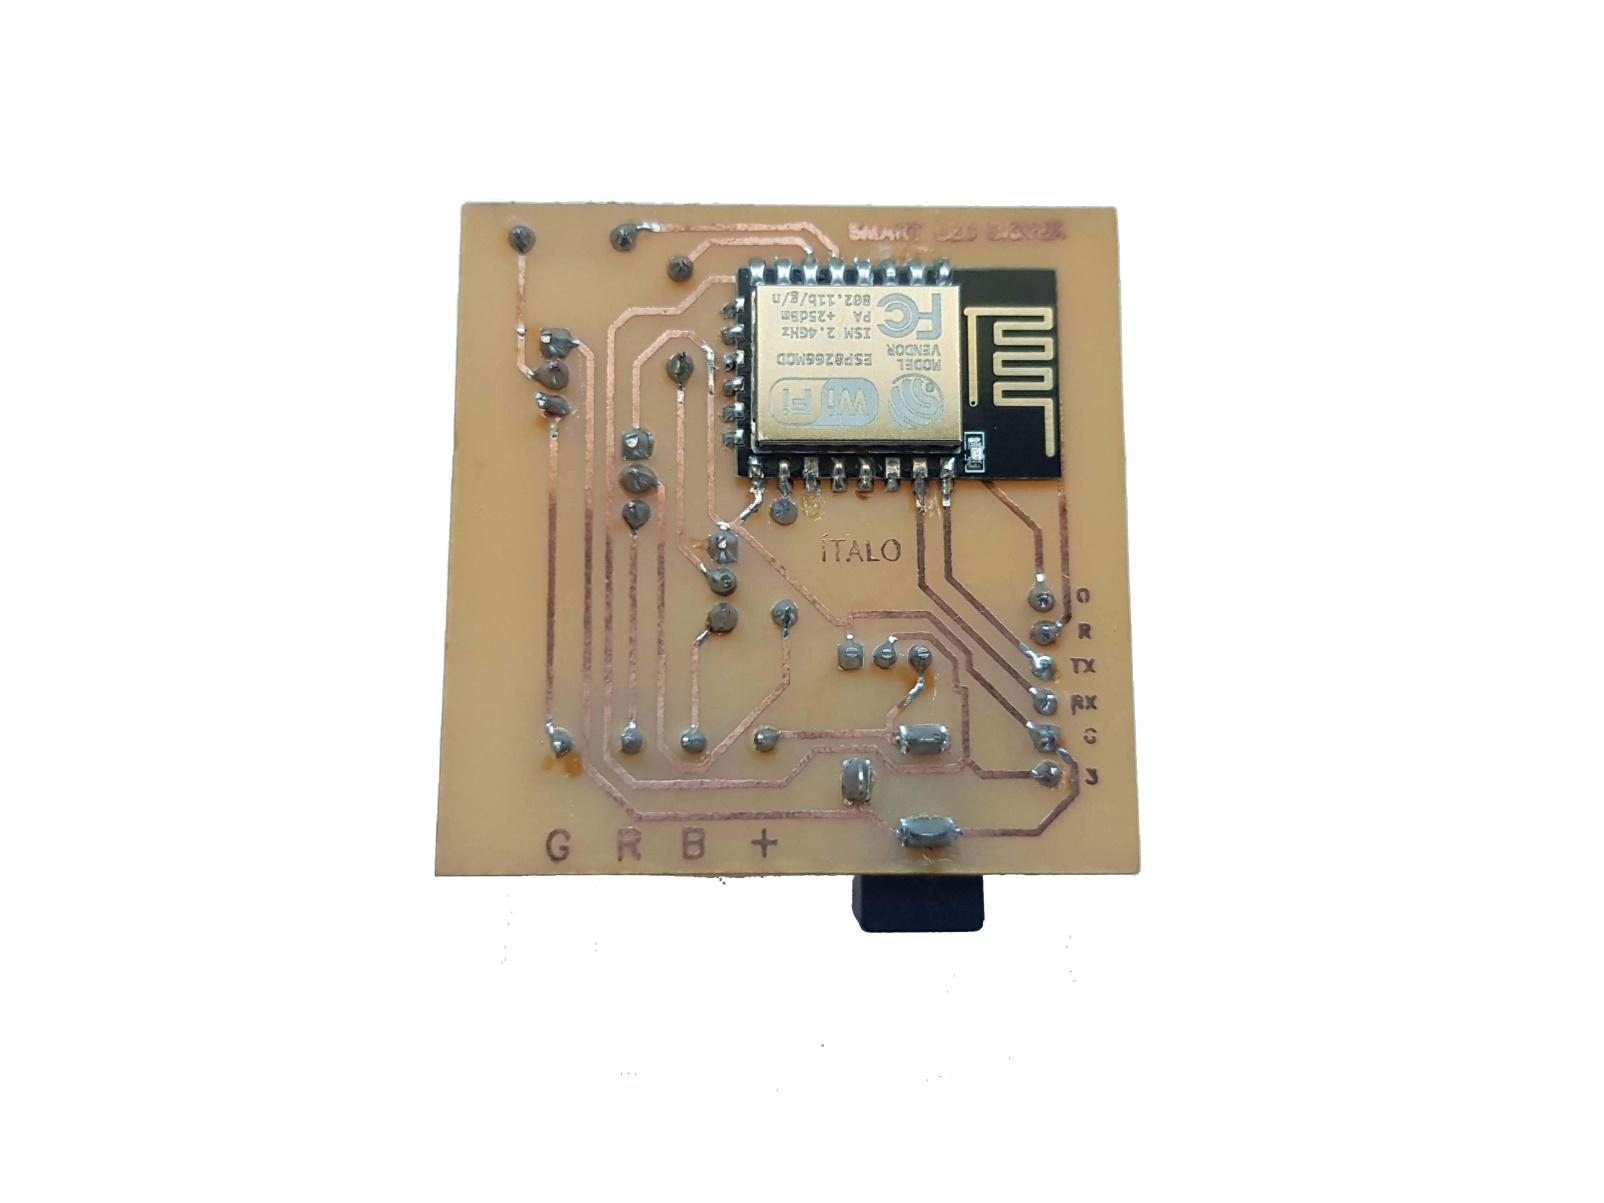 How to create printed circuit board in home with MAD PCB guides